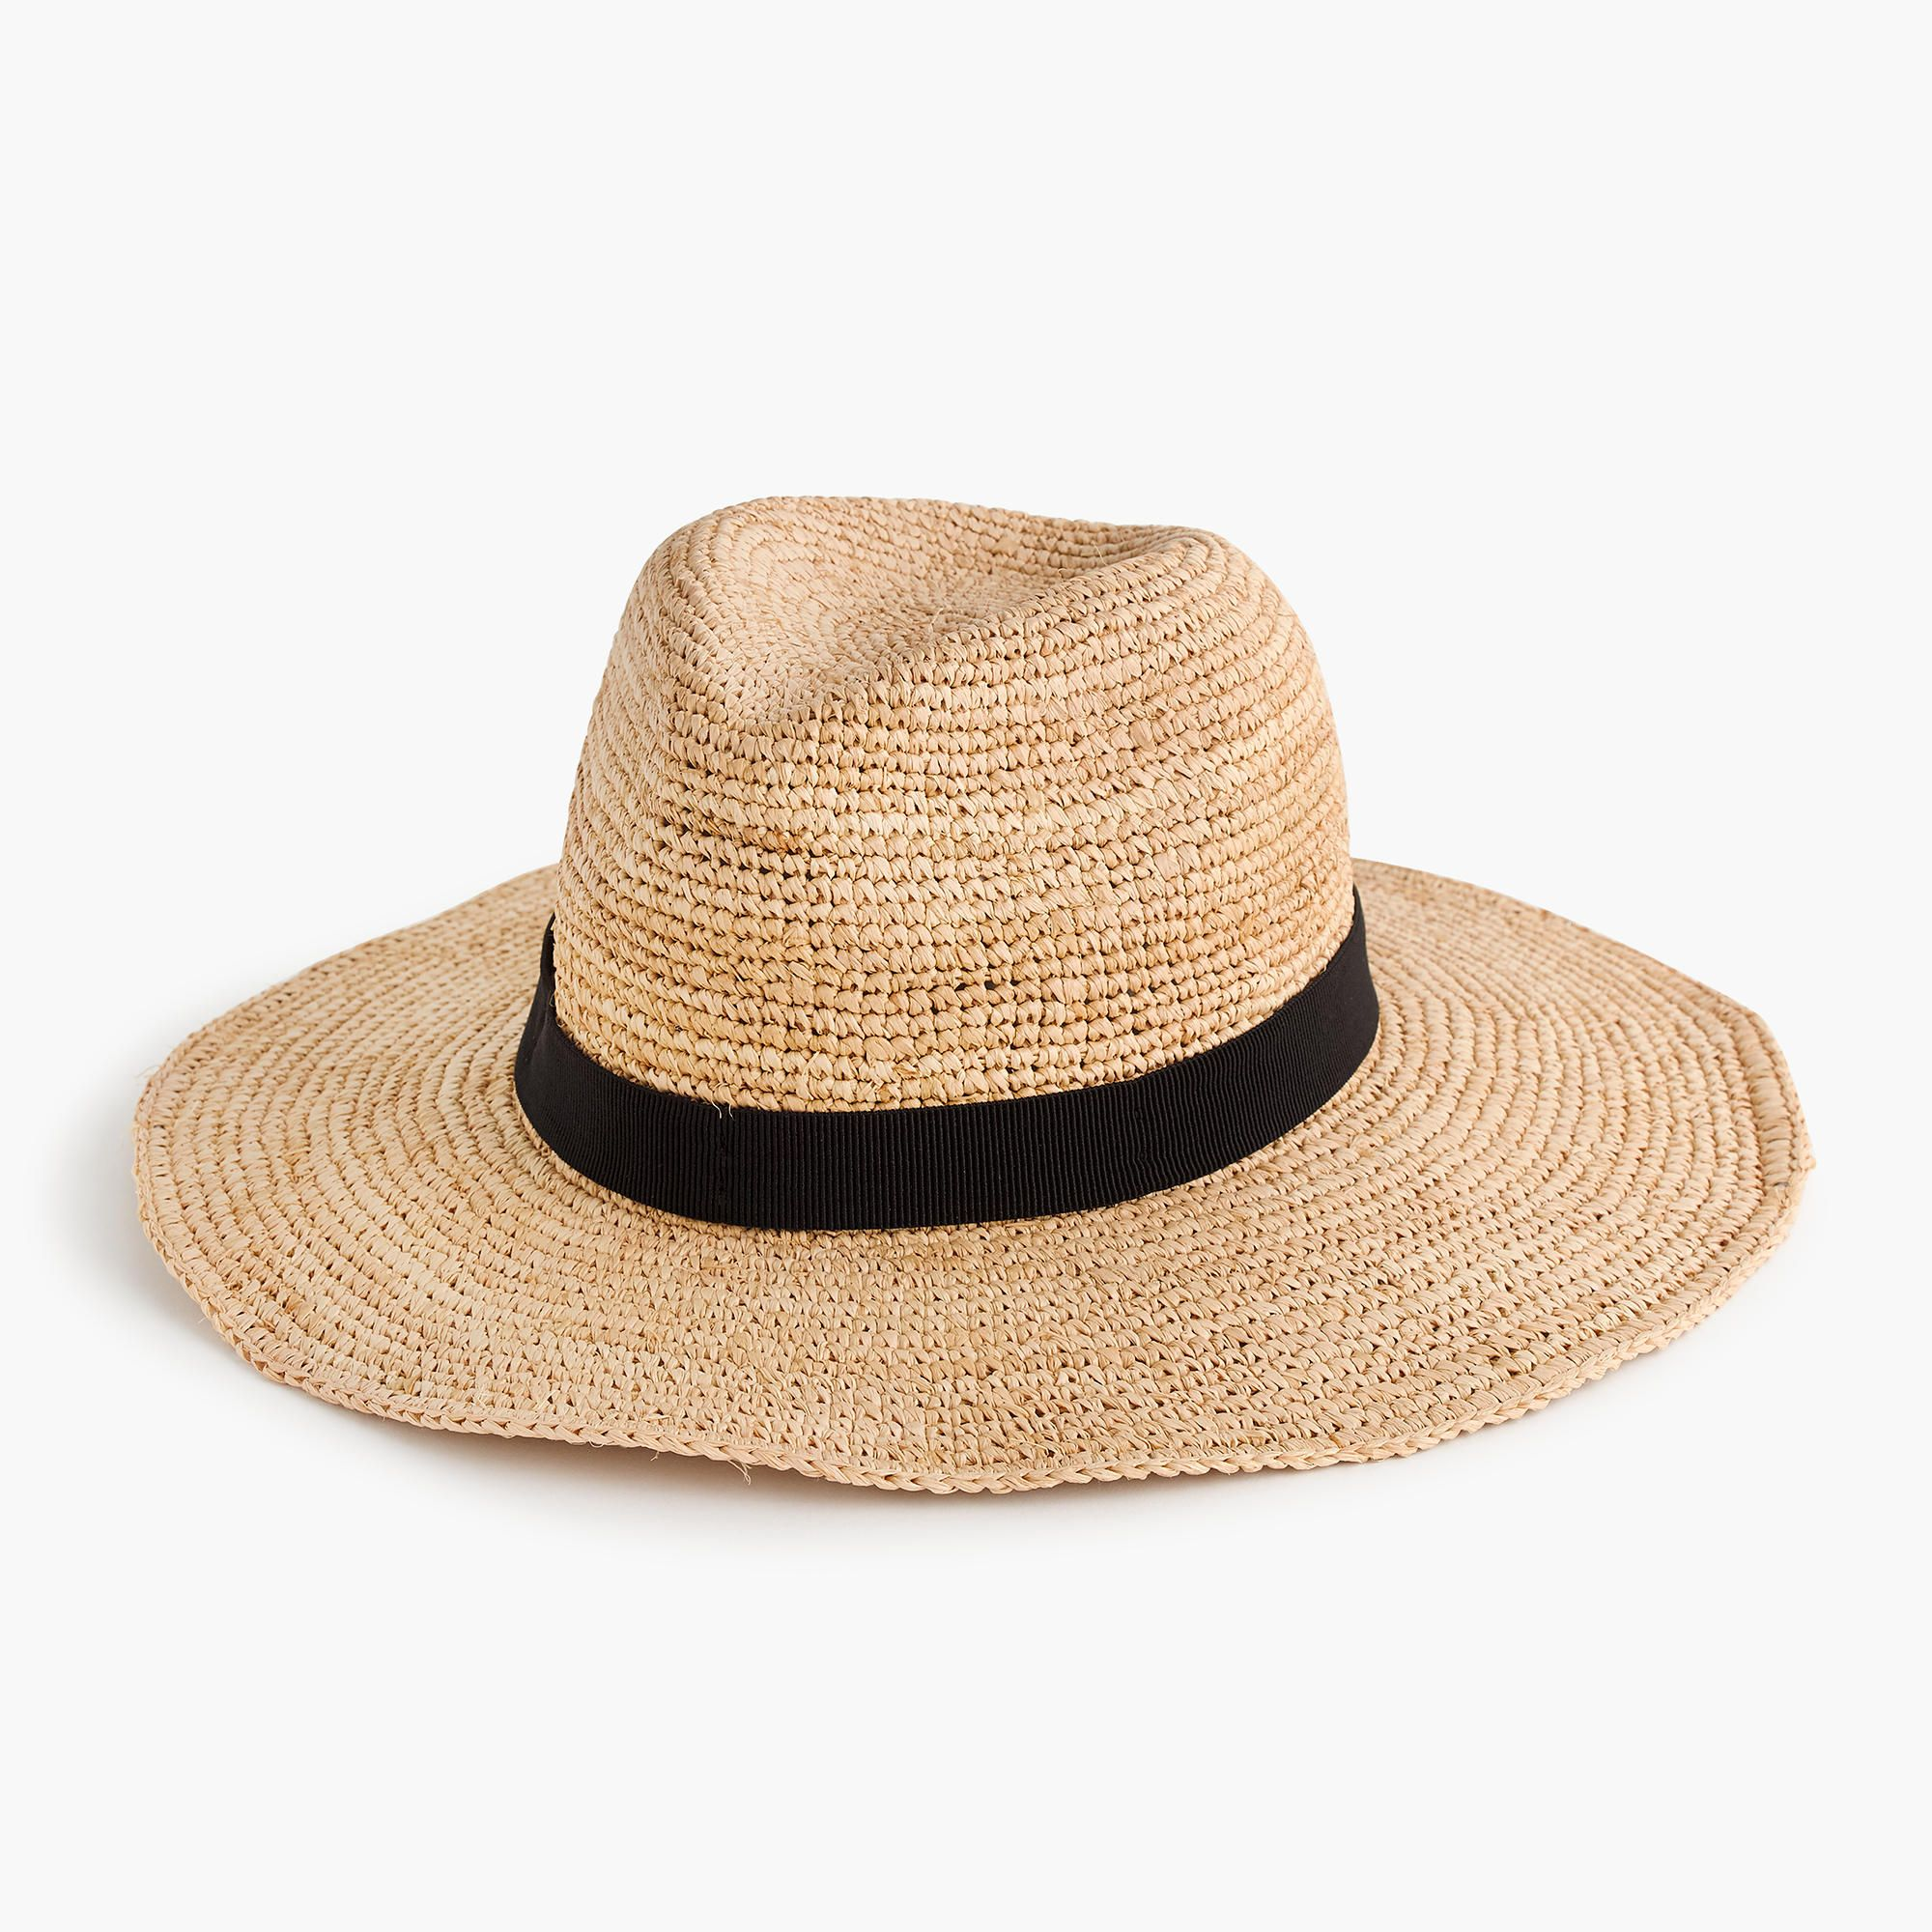 Wide Brim Packable Straw Hat Outfits With Hats Summer Hats For Women Hats For Women